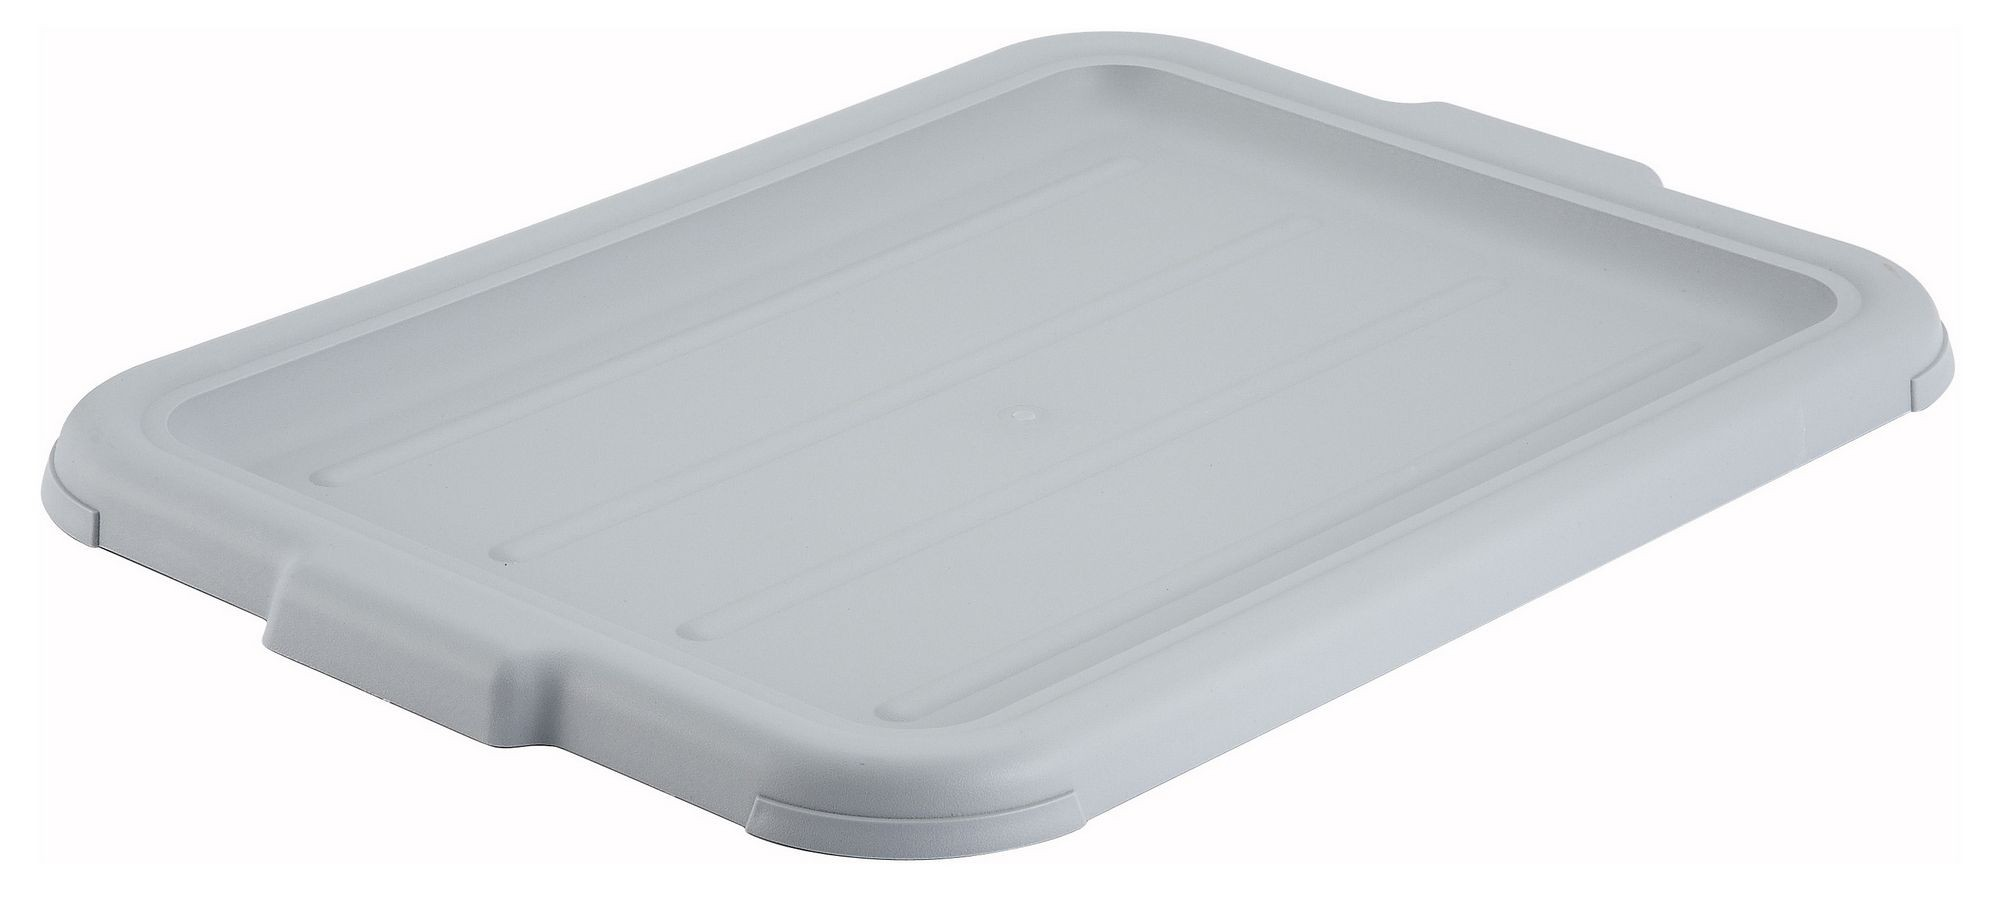 Winco PL-57C Grey Dish Box Cover